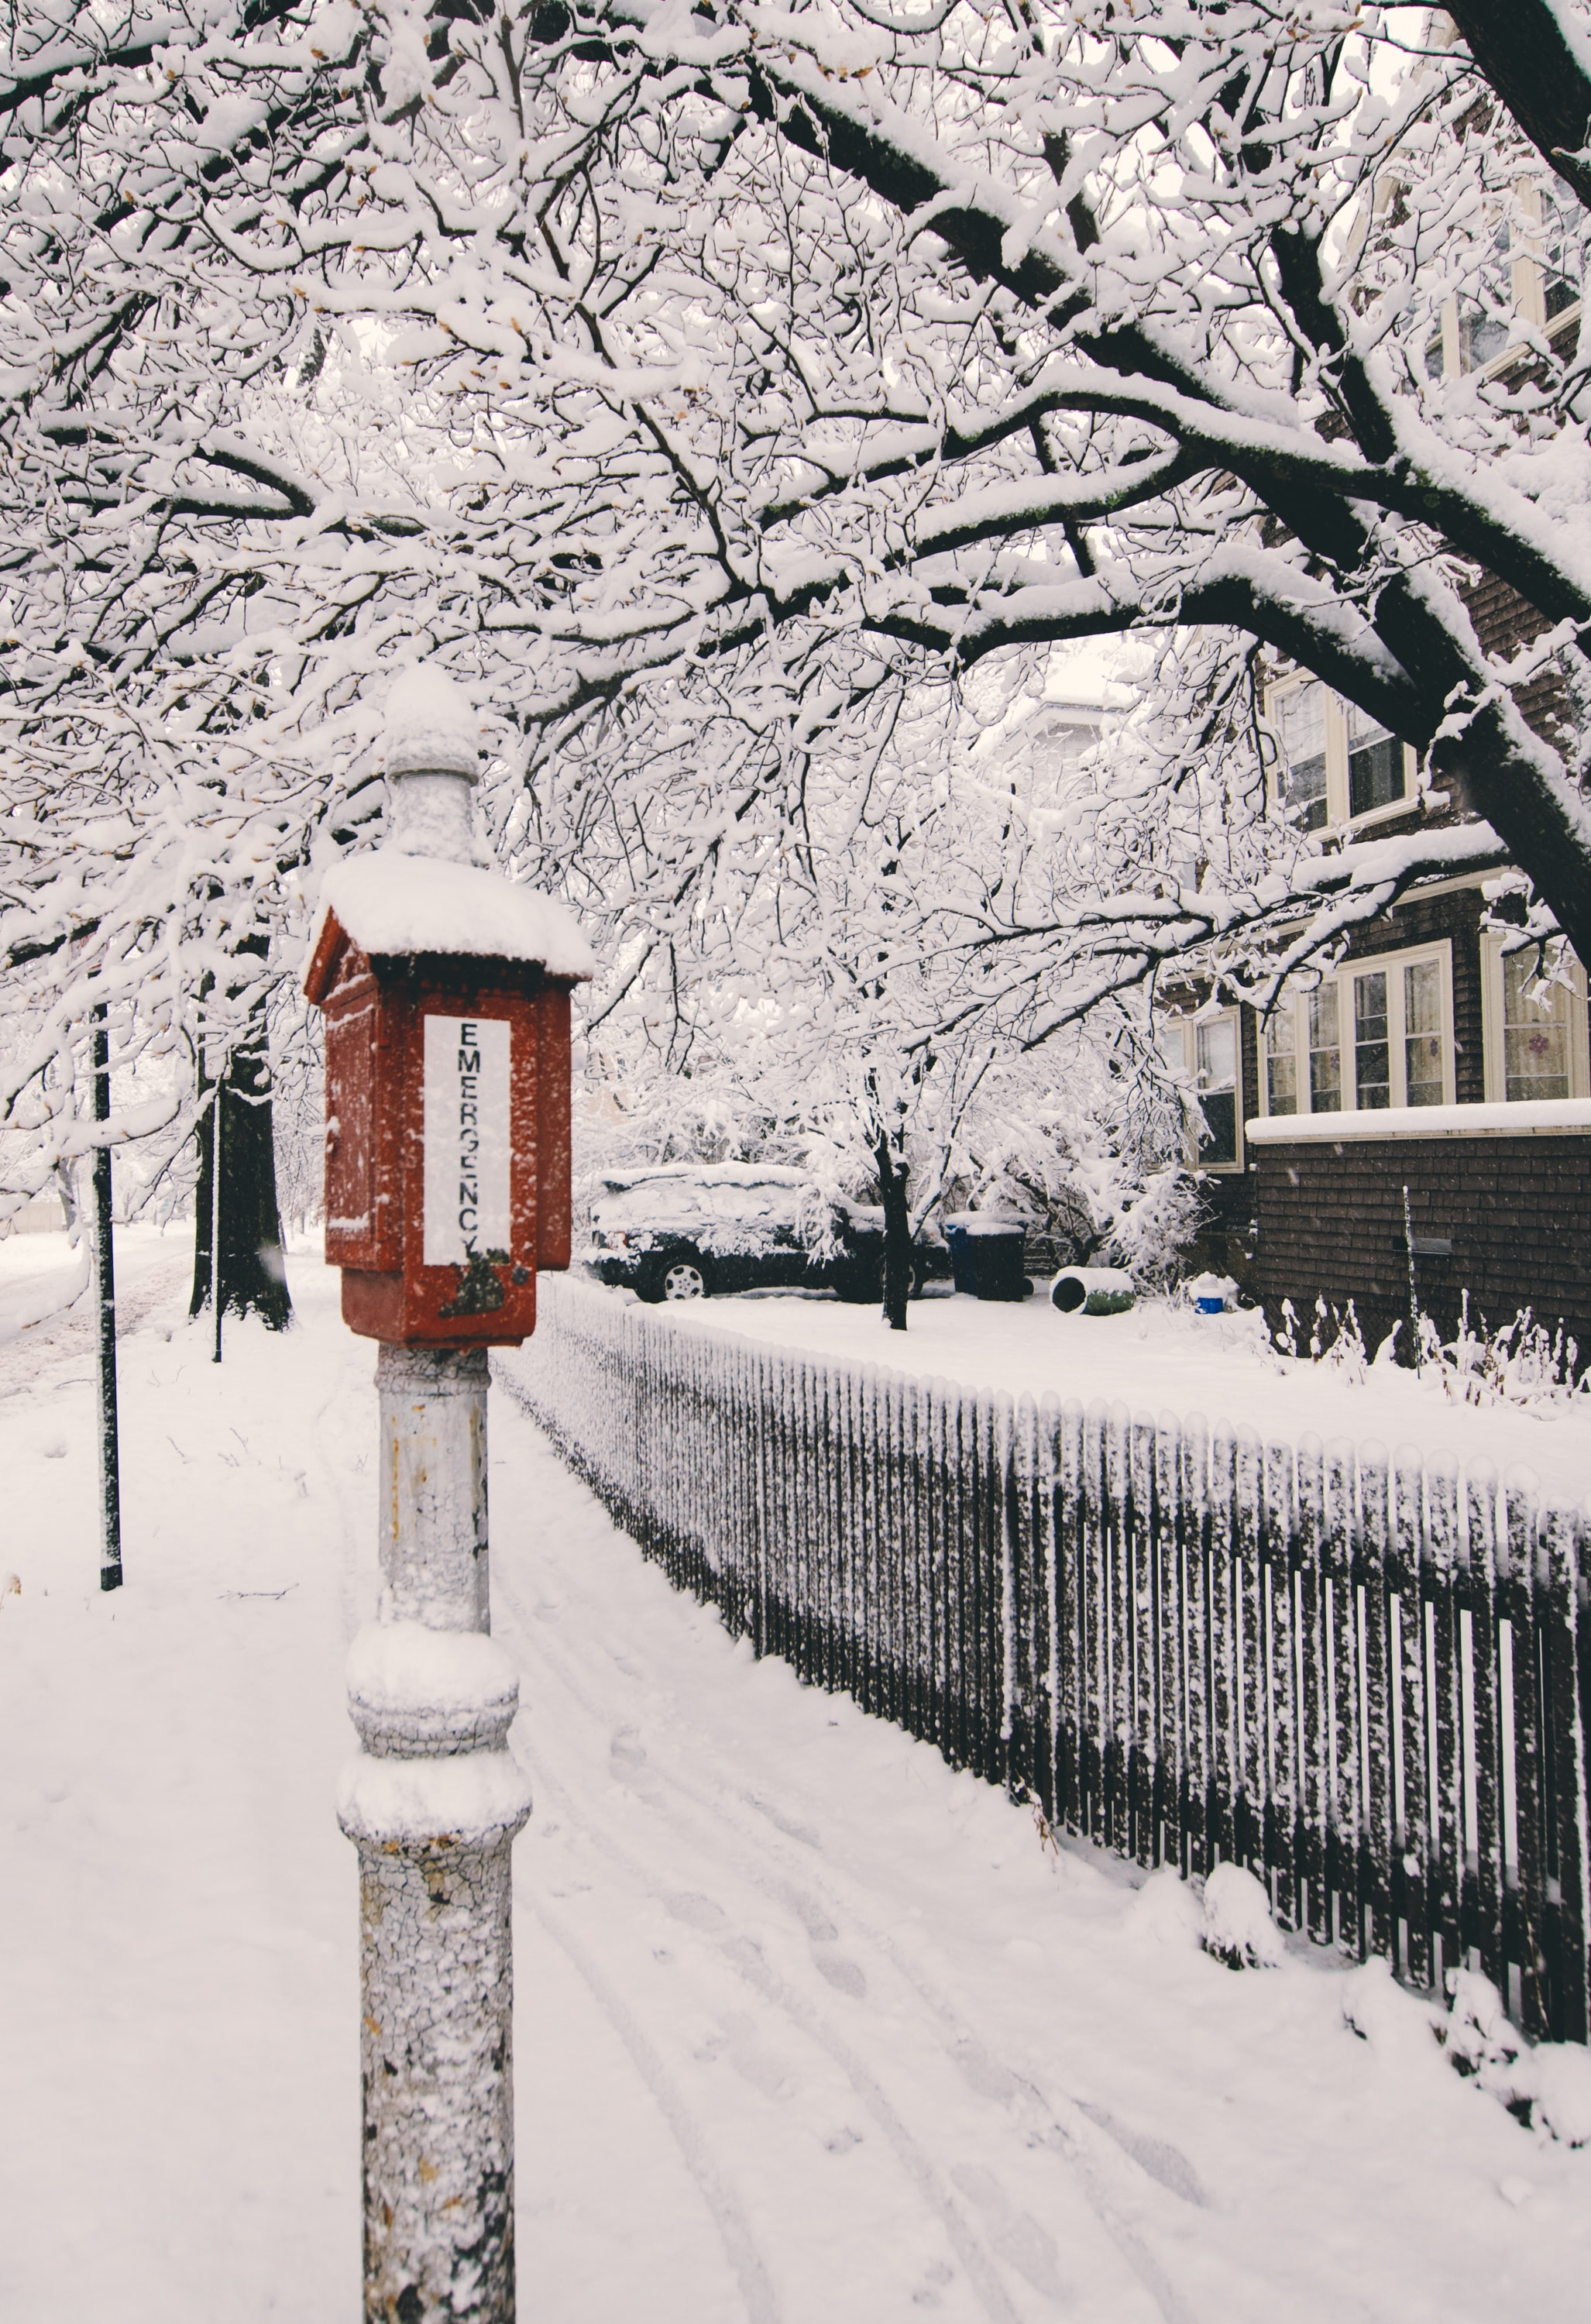 A snow covered residential street.